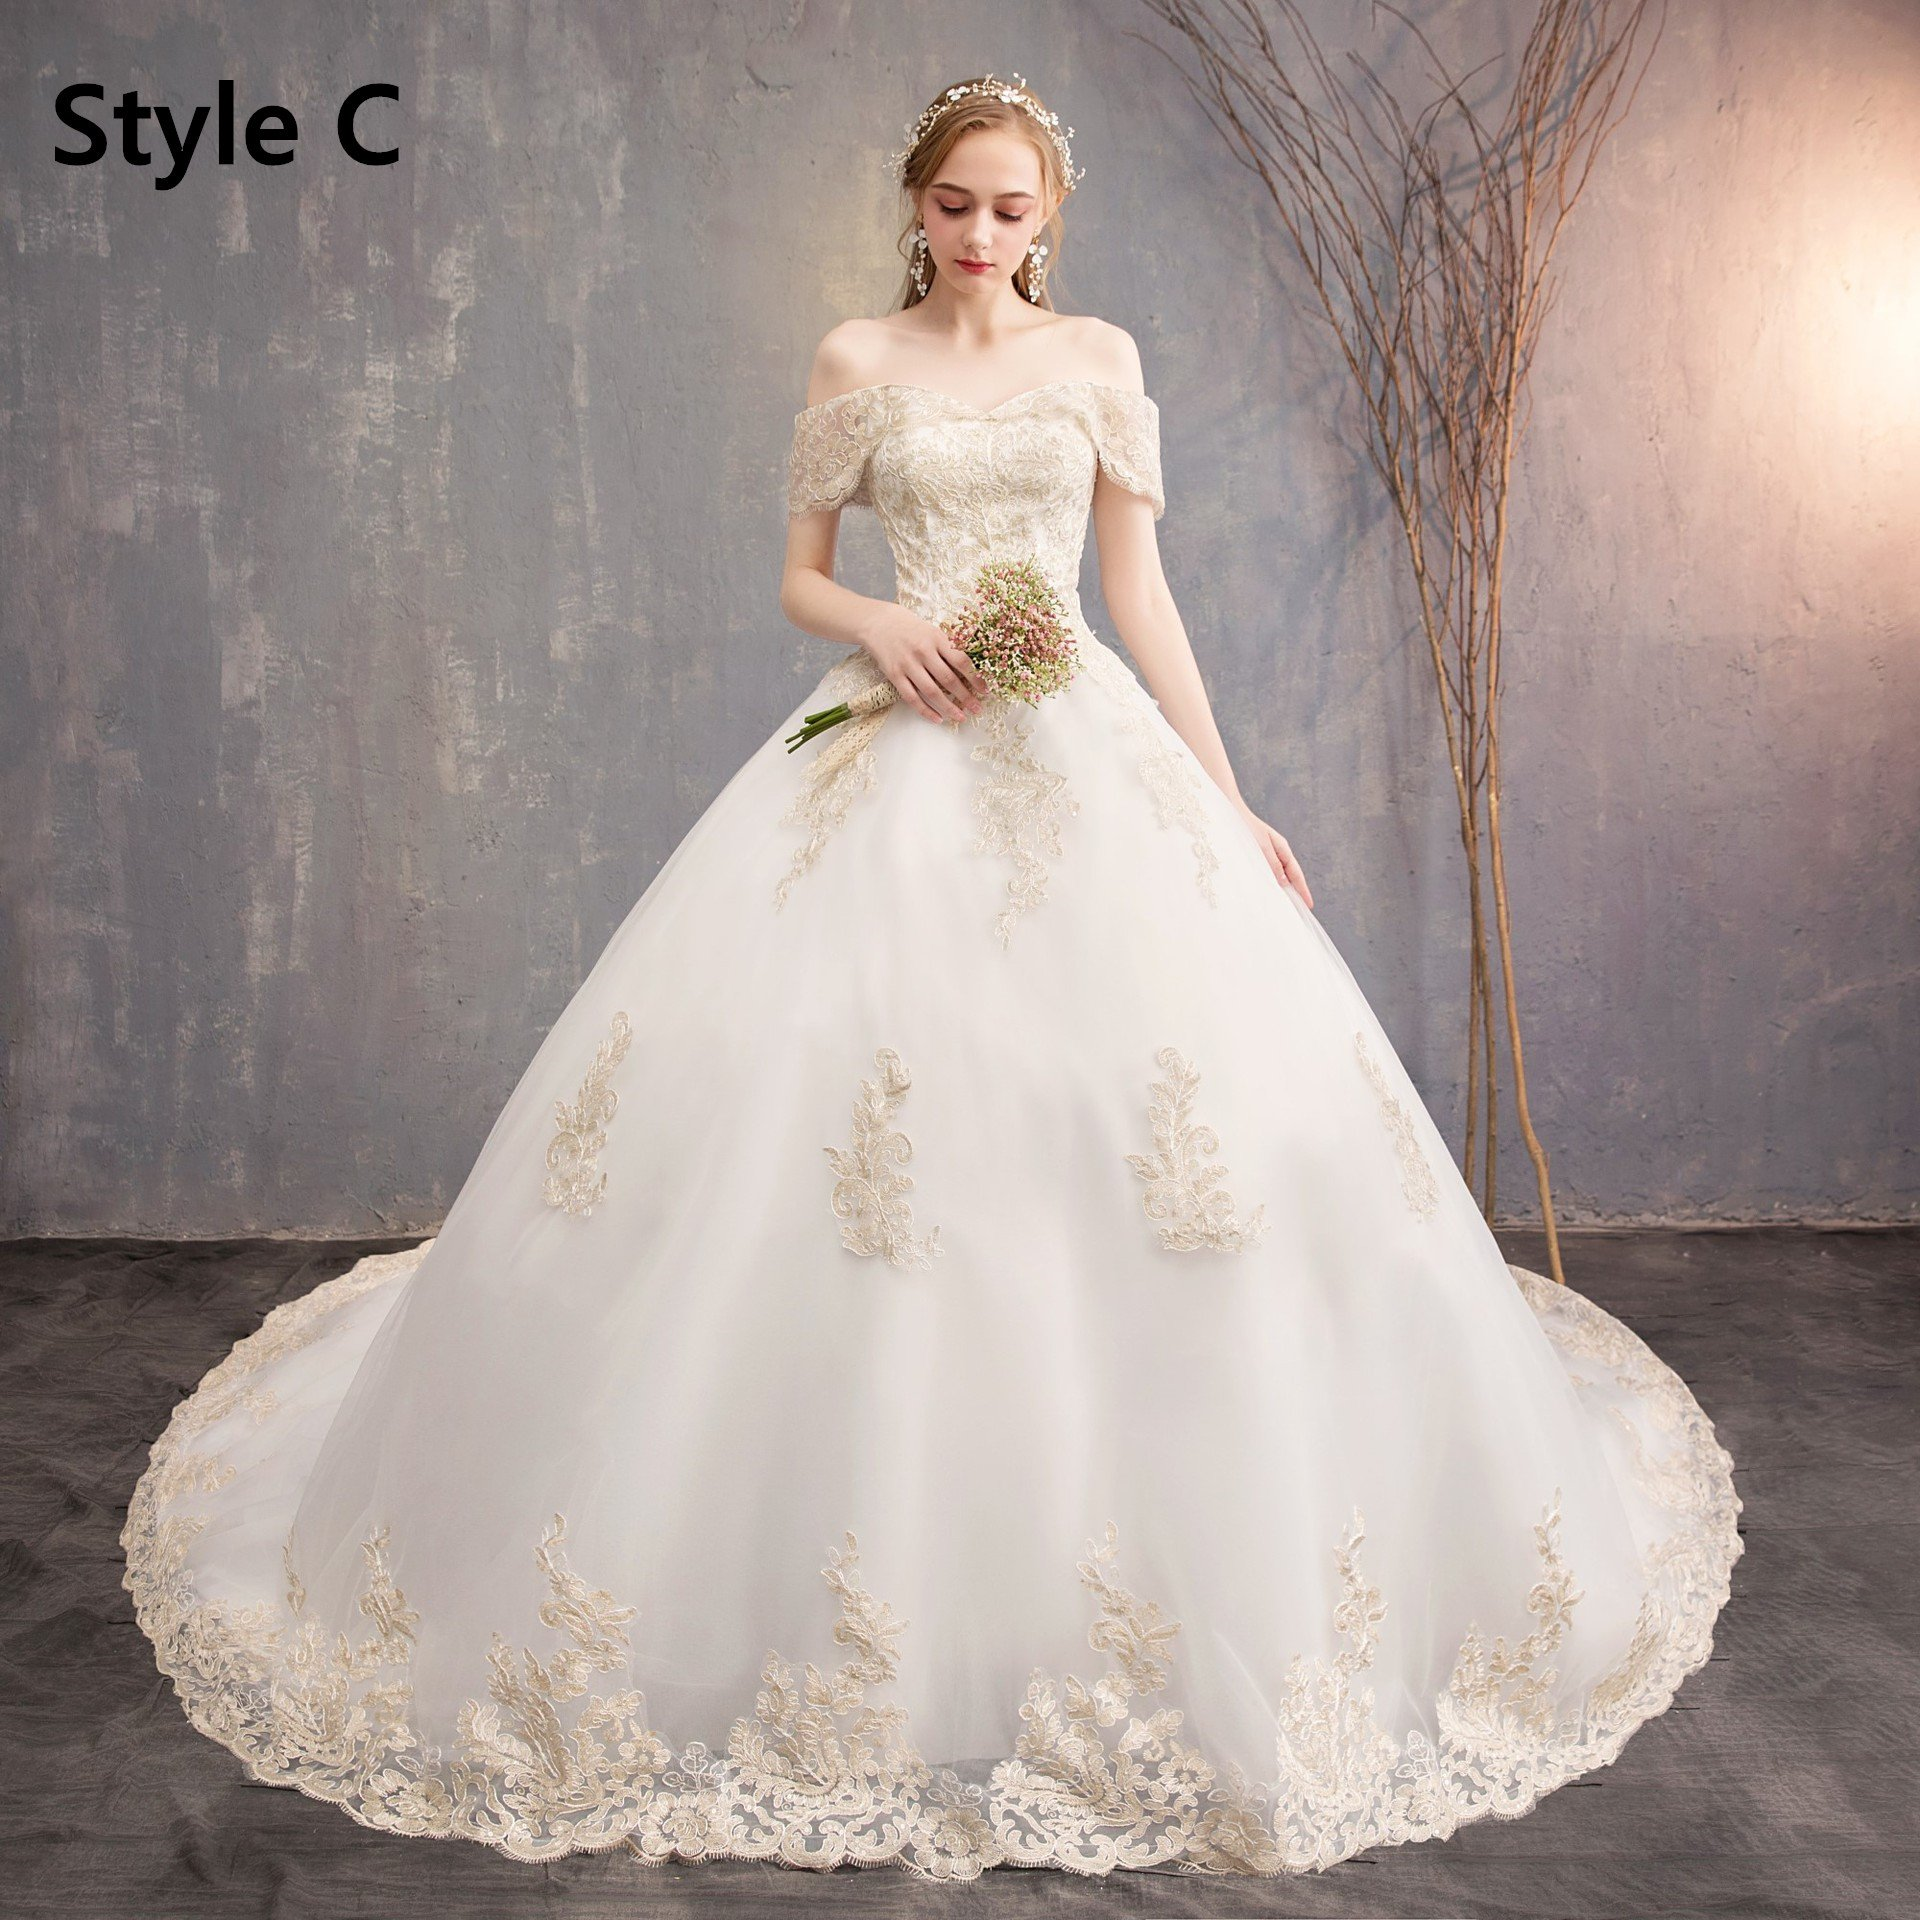 Lace Wedding Dresses 2020 New 715 Winter Wedding Guest Outfits Uk 60S Dress Floral Square Neck Dress Lehenga On Rent Inexpensive Bridesmaid Dresses Brown Lace Dress